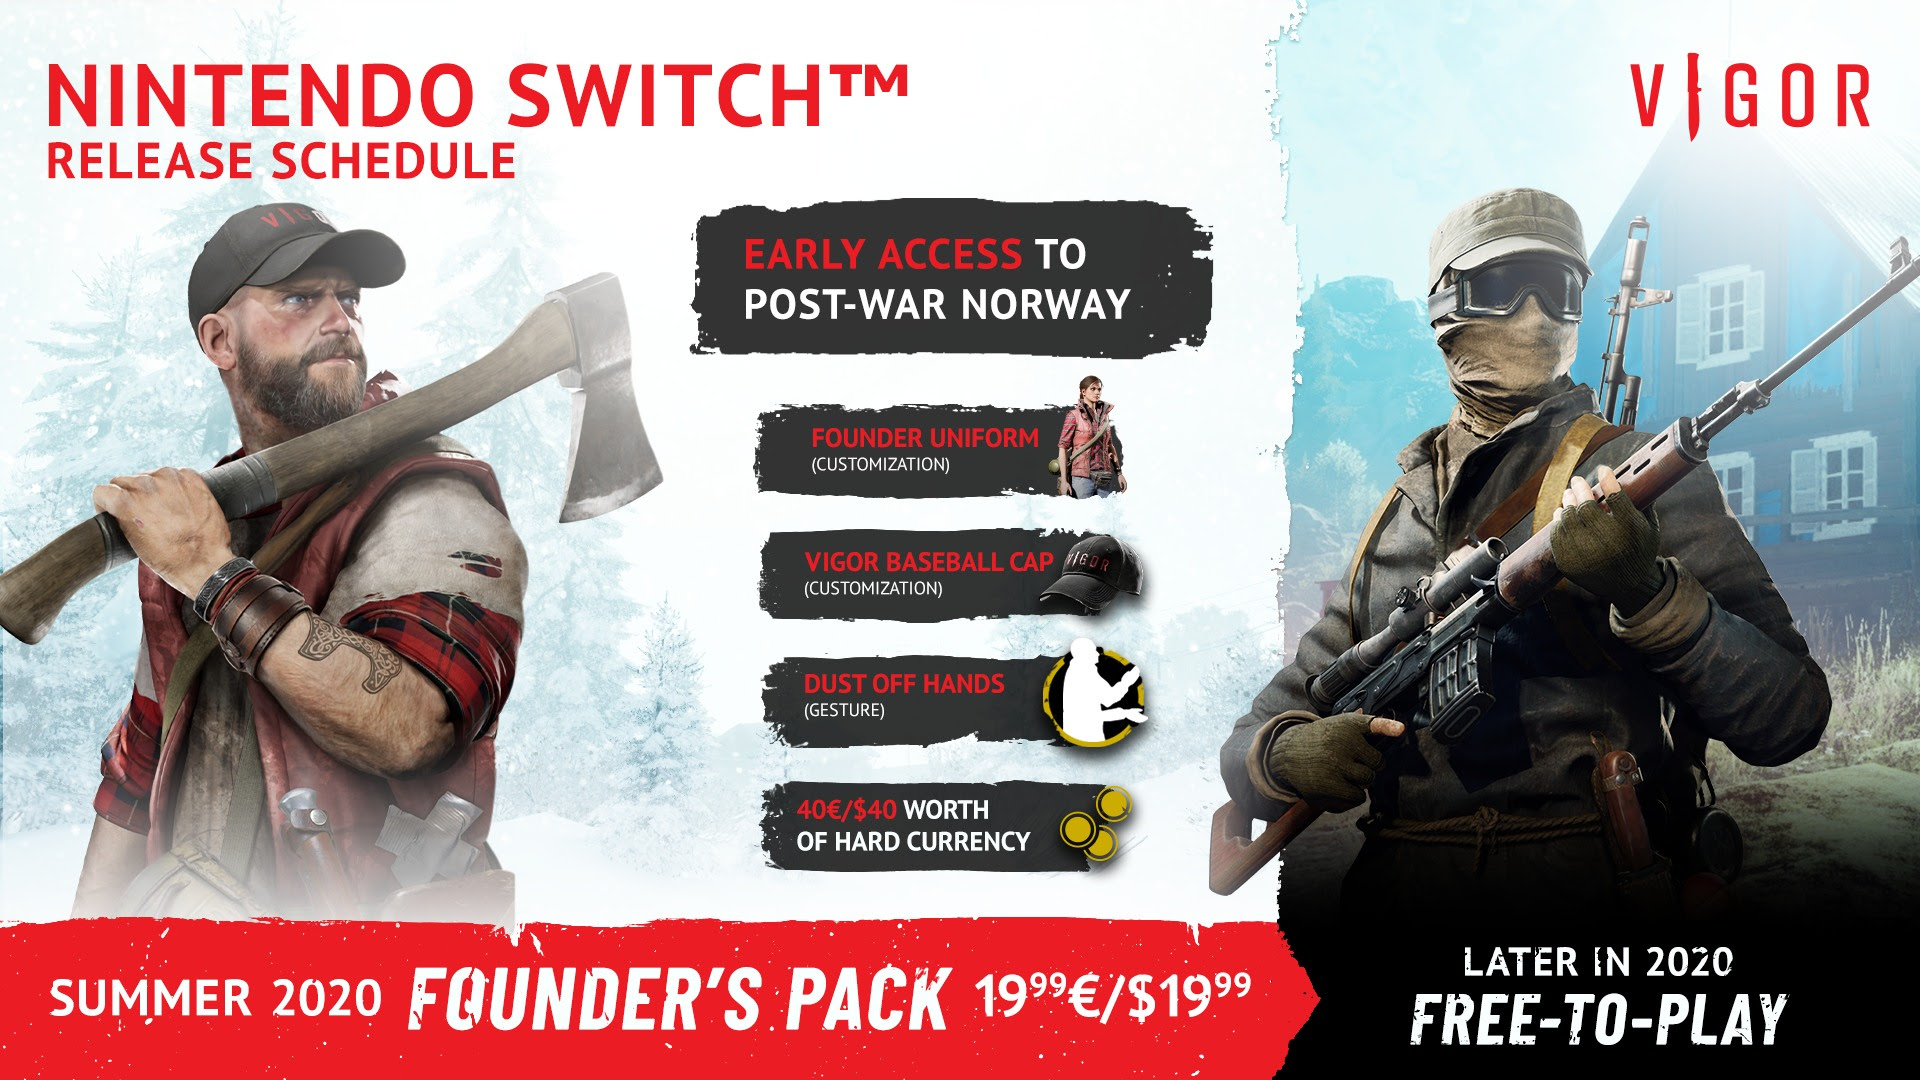 Vigor Nintendo Switch Founder's Pack